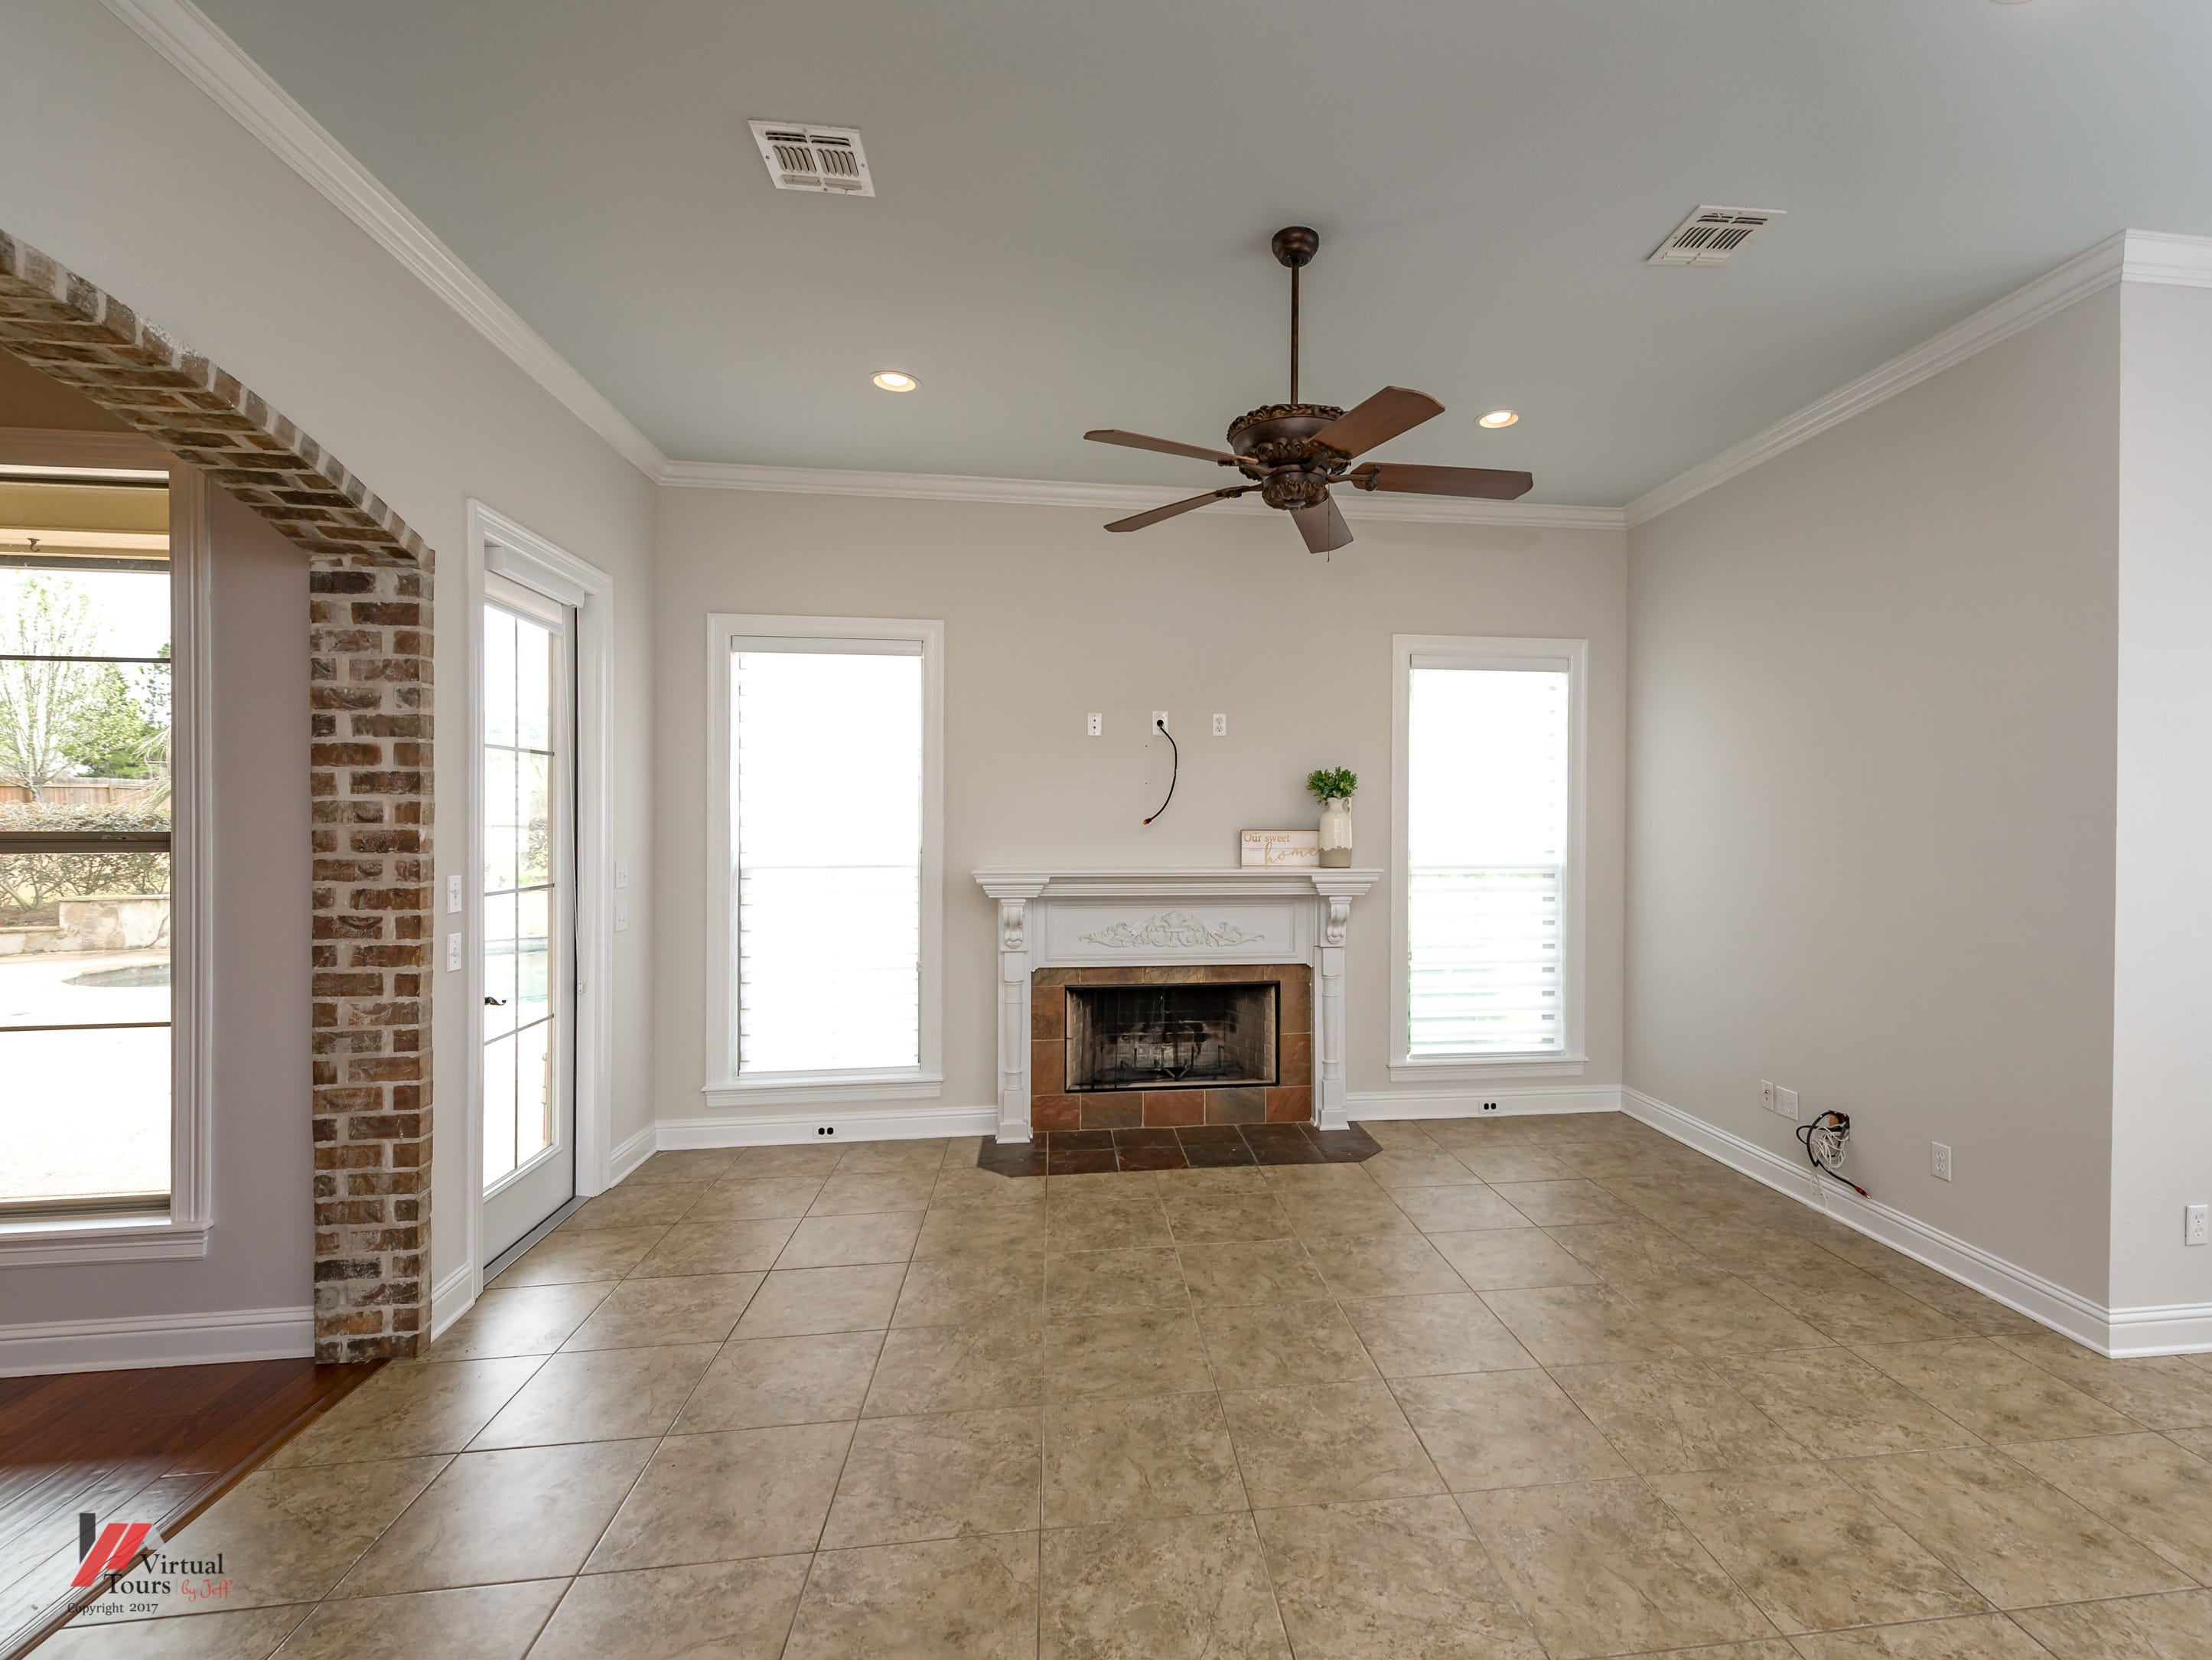 2824 Falmoth Drive, Shreveport  Price: $489,900  Details: 4 bedrooms, 4 bathrooms, 3,314 square feet  Features: Stunning home with backyard oasis, fresh paint, cathedral ceilings, arched door frames, cozy hearth room, rich cabinetry, cook's kitchen, tray ceilings, bonus spaces, inground pool, gazebo and entertaining patio.   Contact: Shelly Wagner, 518-6983